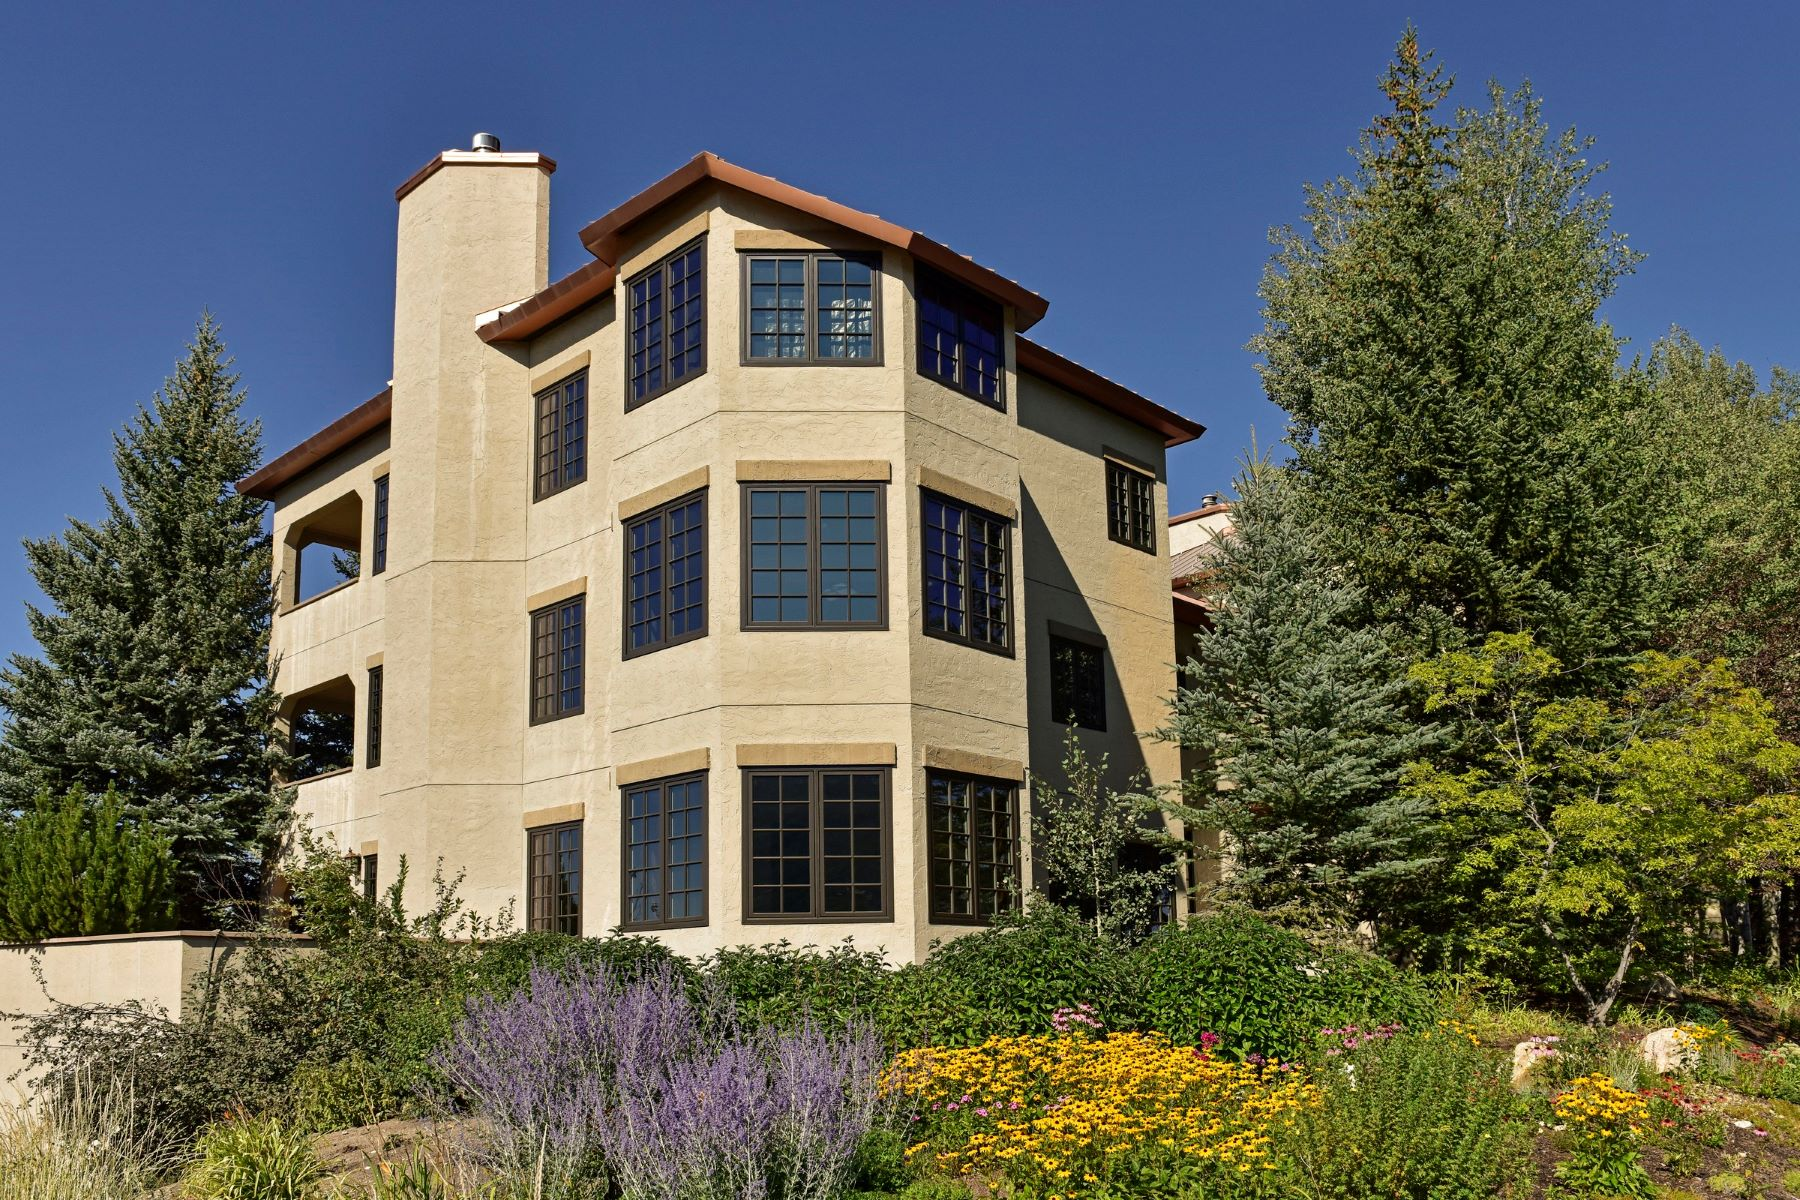 Additional photo for property listing at Atriums at Steamboat 2600 Eagleridge Drive #24 Steamboat Springs, Colorado 80487 Estados Unidos